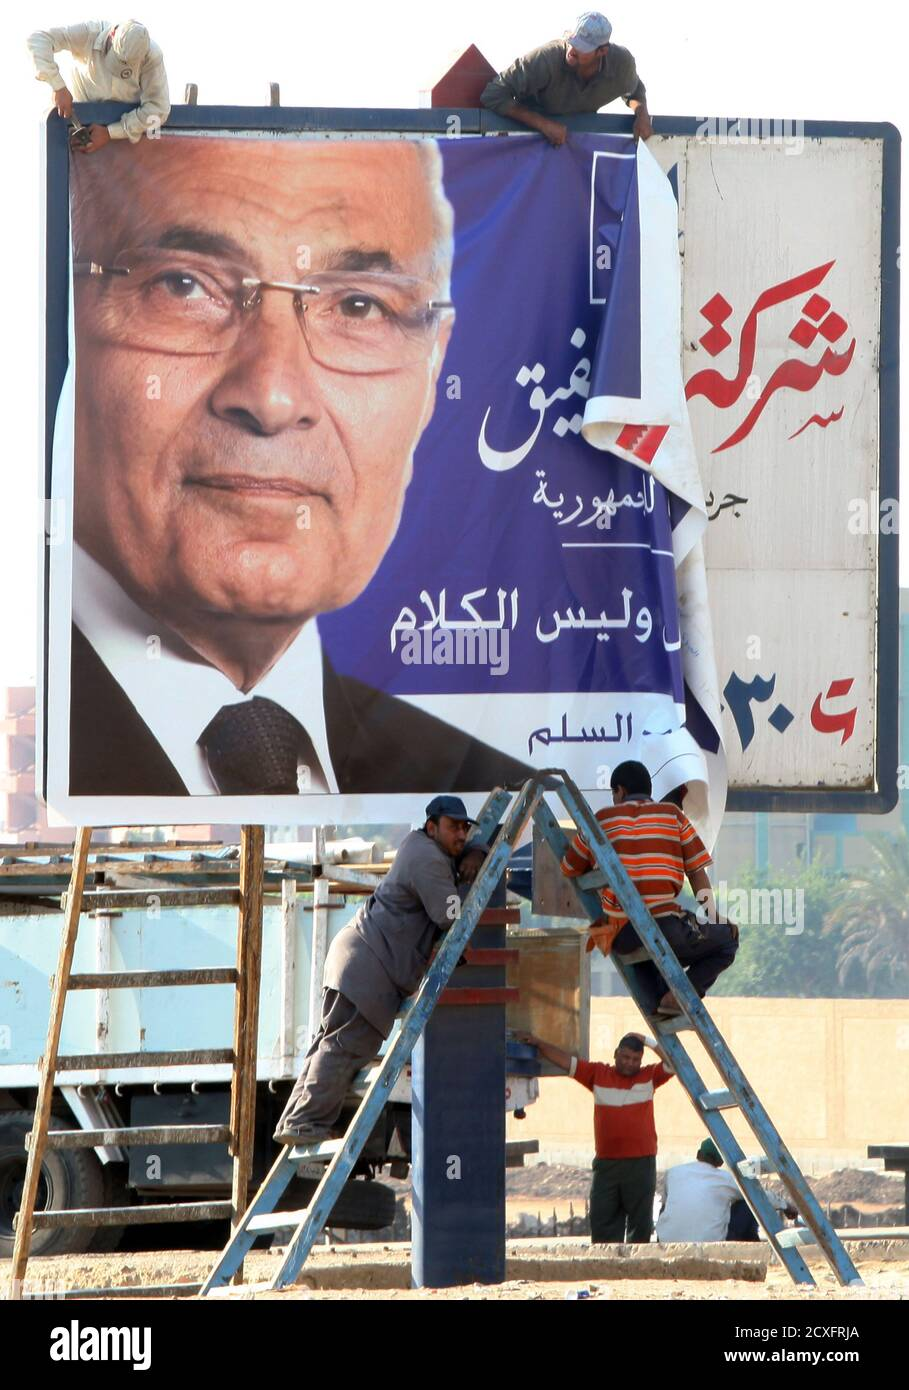 Egyptian workers hang up a campaign poster of presidential candidate and former prime minister Ahmed Shafiq in Cairo May 7, 2012. Voting starts on May 23-24 in the election to choose a new president after Hosni Mubarak was turfed out of office last year. REUTERS/Amr Abdallah Dalsh  (EGYPT - Tags: POLITICS ELECTIONS) Stock Photo